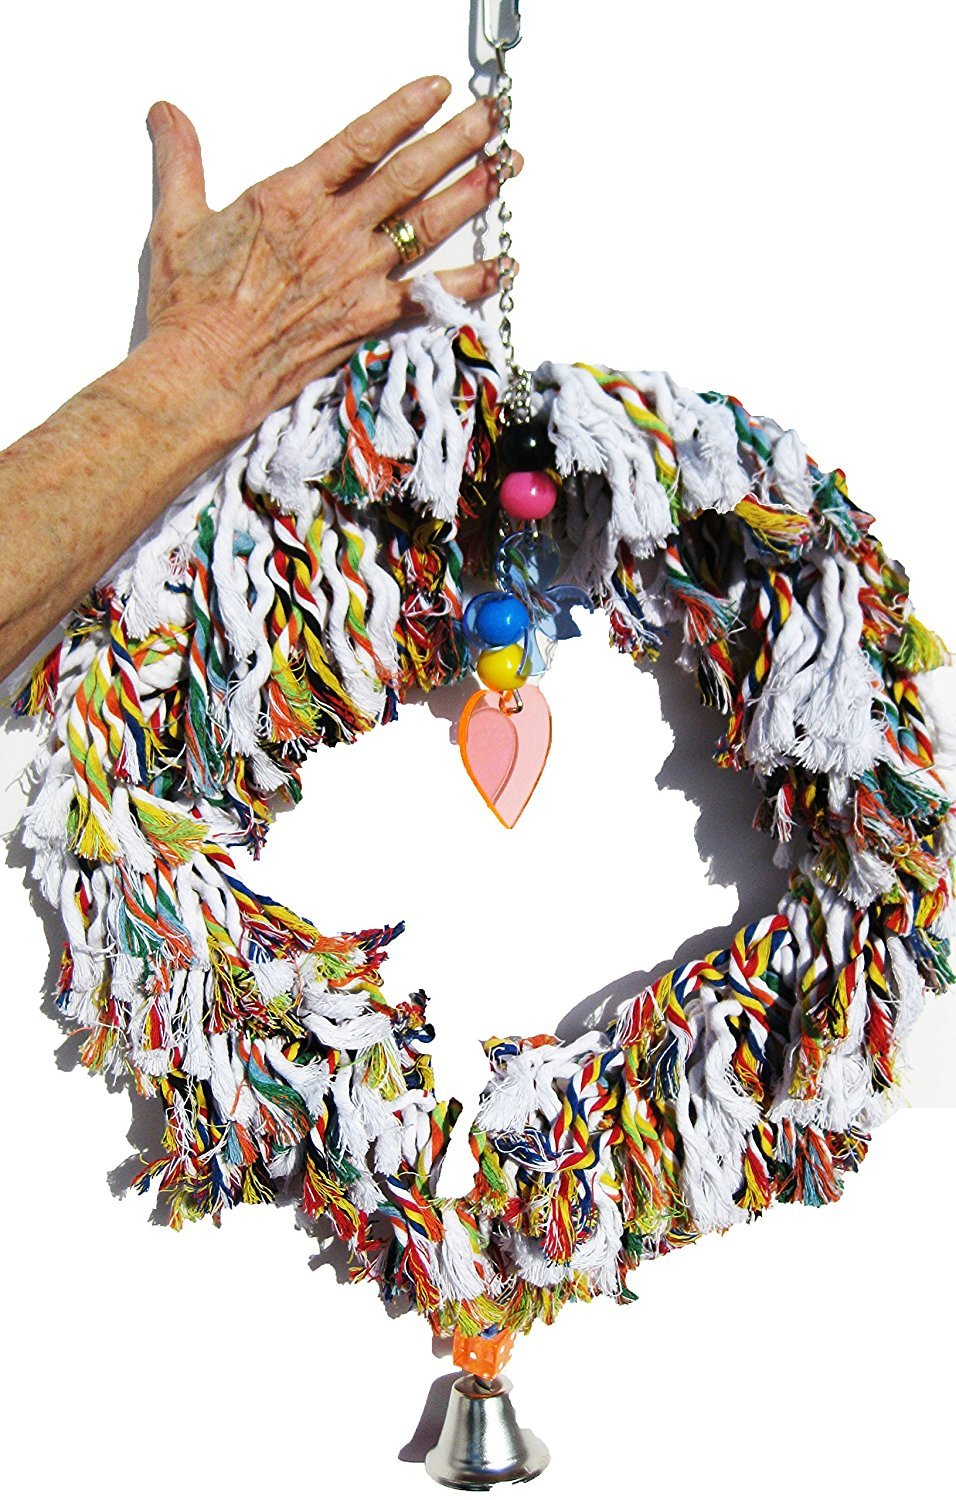 Large Fluffy Ring Bonka Bird Toys 1017 Huge Fluffy Ring Bird Toy Parred cage Toys Cages Swing Preen Plucker binkie